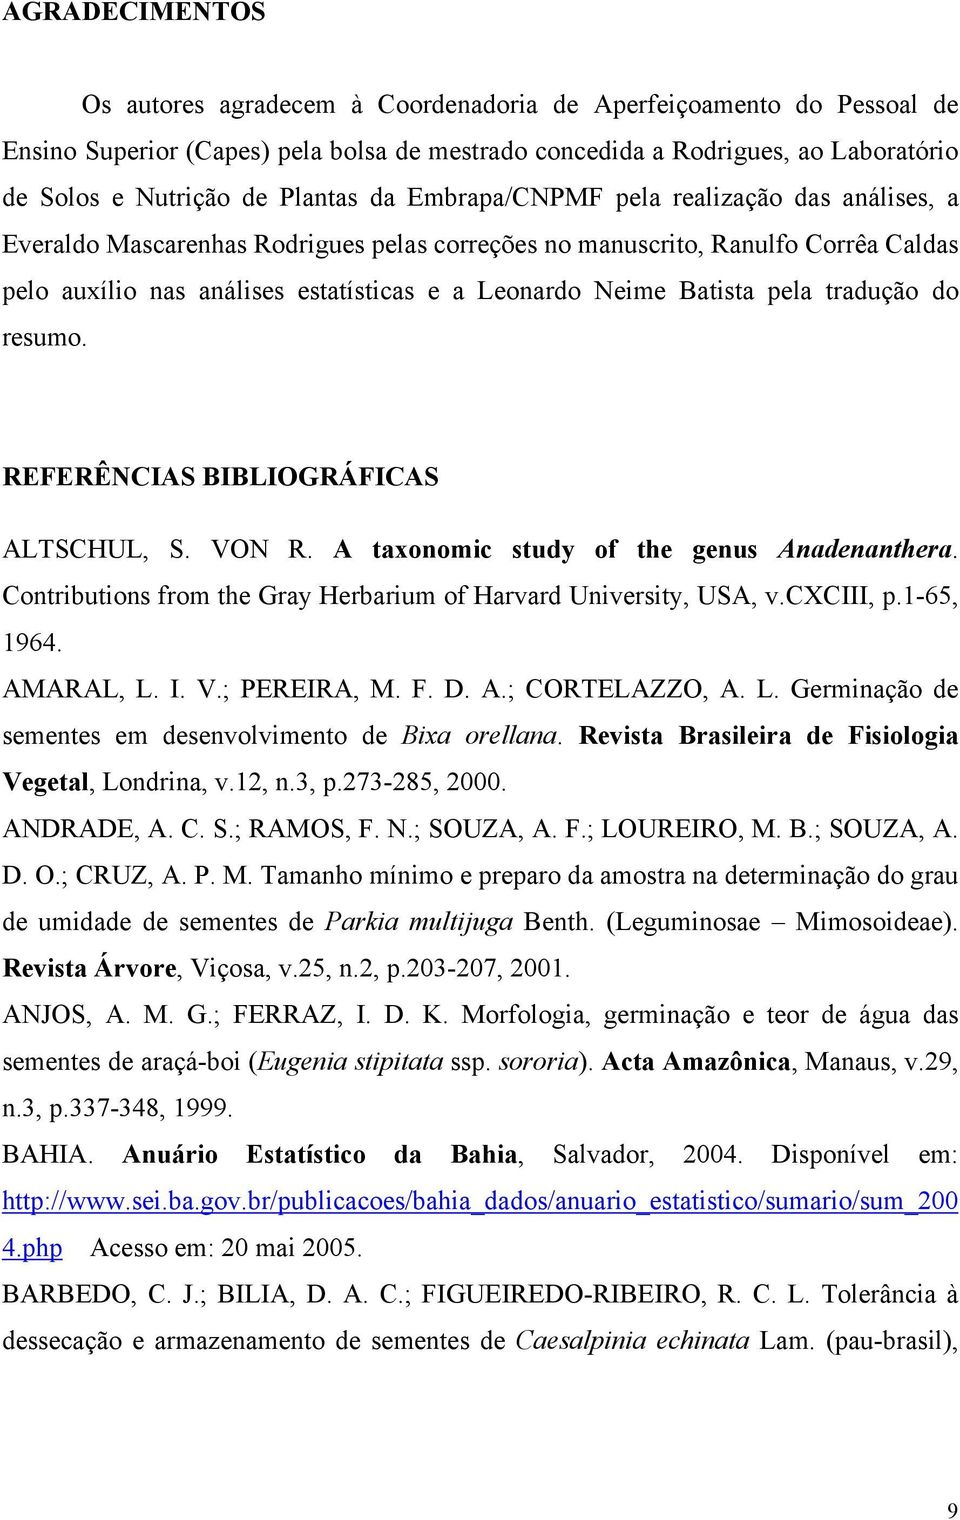 Batista pela tradução do resumo. REFERÊNCIAS BIBLIOGRÁFICAS ALTSCHUL, S. VON R. A taxonomic study of the genus Anadenanthera. Contributions from the Gray Herbarium of Harvard University, USA, v.